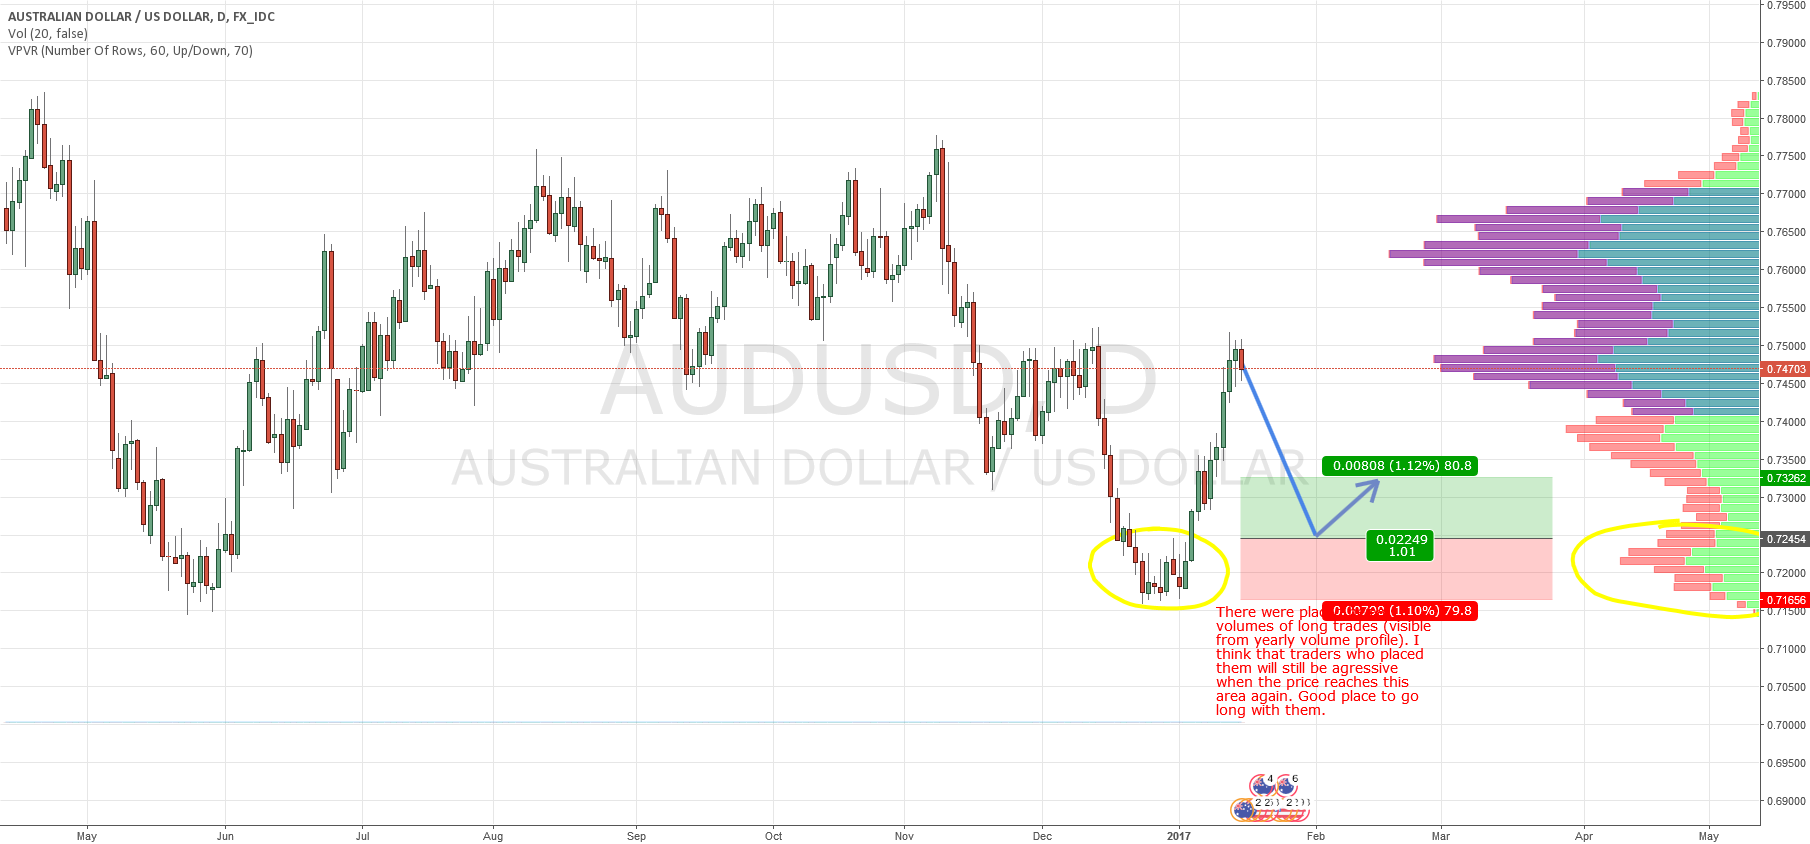 AUD/USD swing based on Market Profile and Price Action